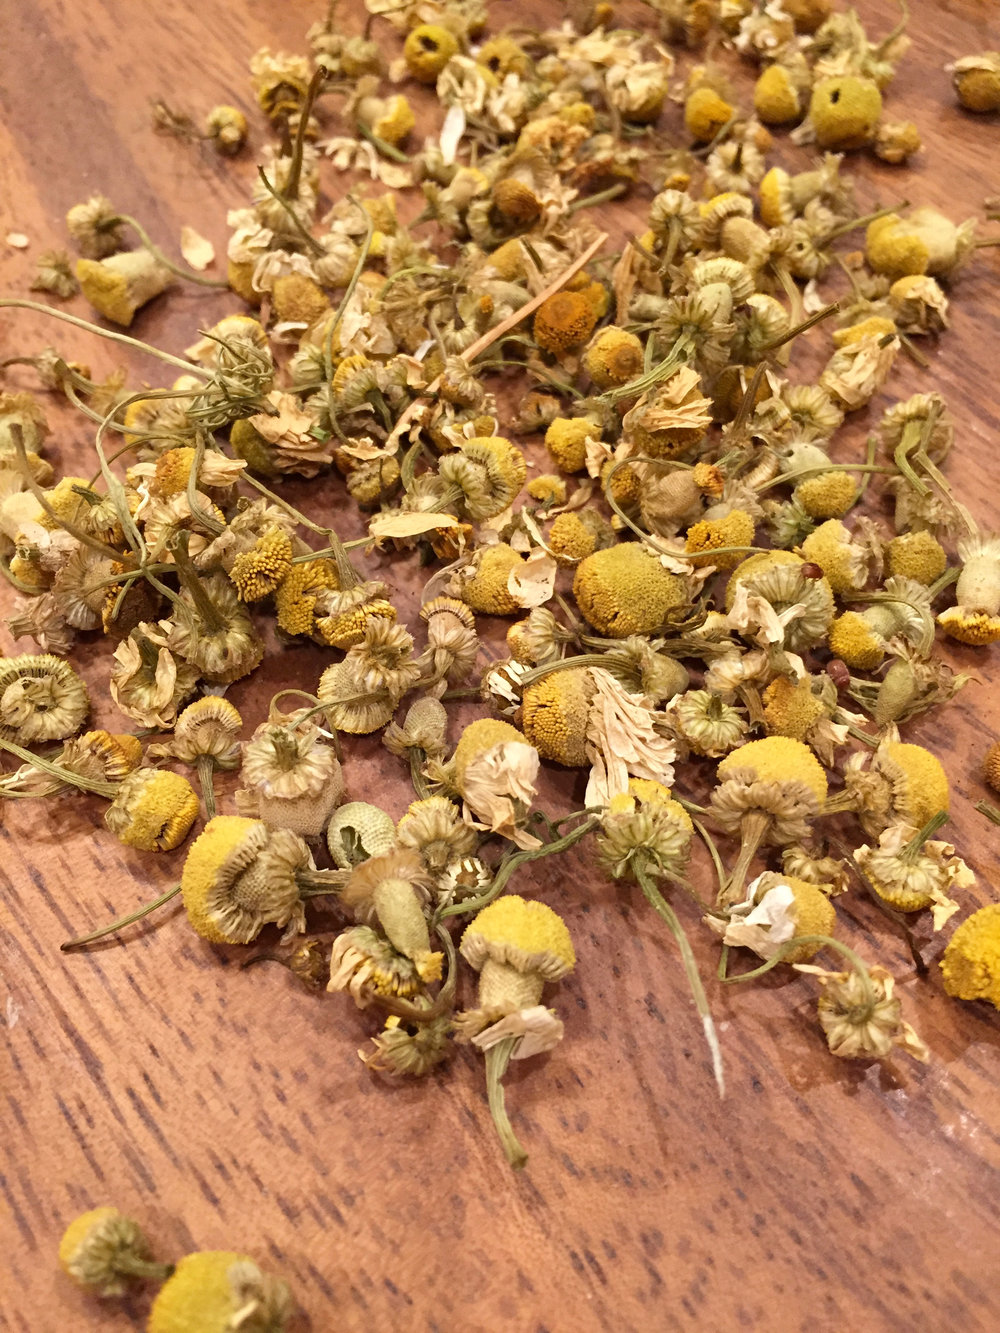 whole camomile flowers for tea- I just drank a cup of the tea, and it is SO good